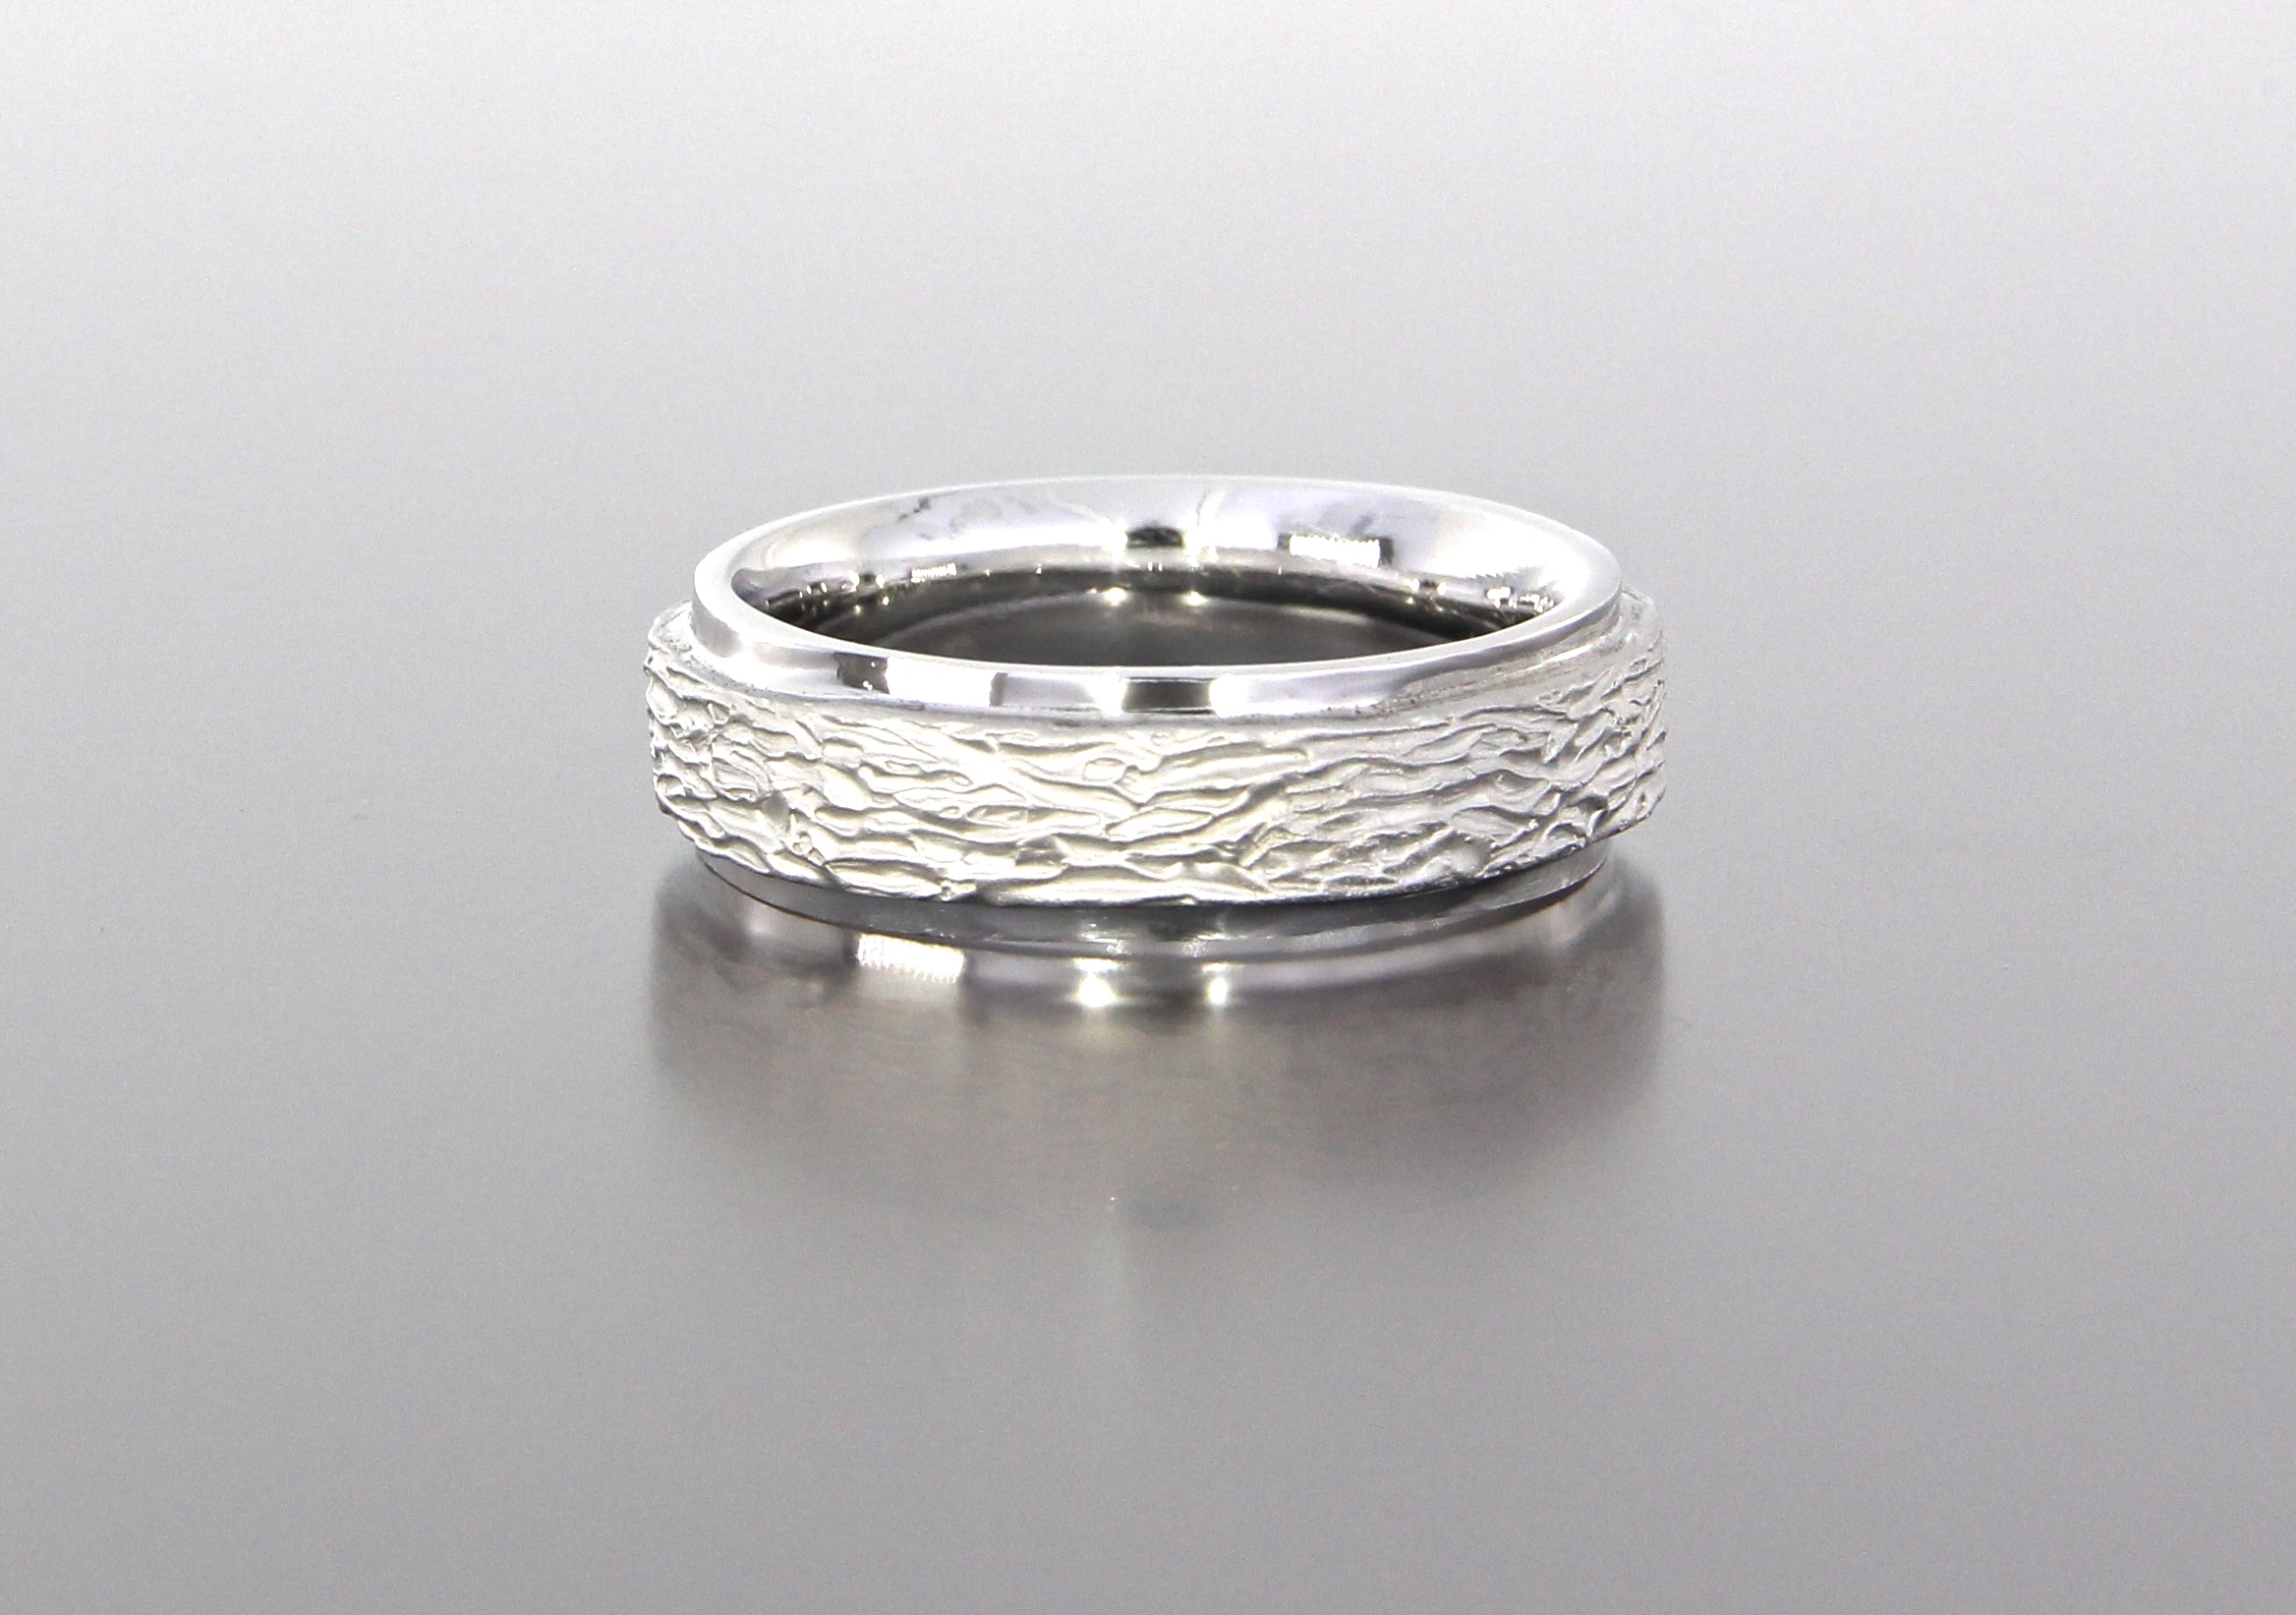 unique-mens-band-textured-design-wedding-band-white-gold-custom-modern-design-craft-revival-jewelry-store-grand-rapids